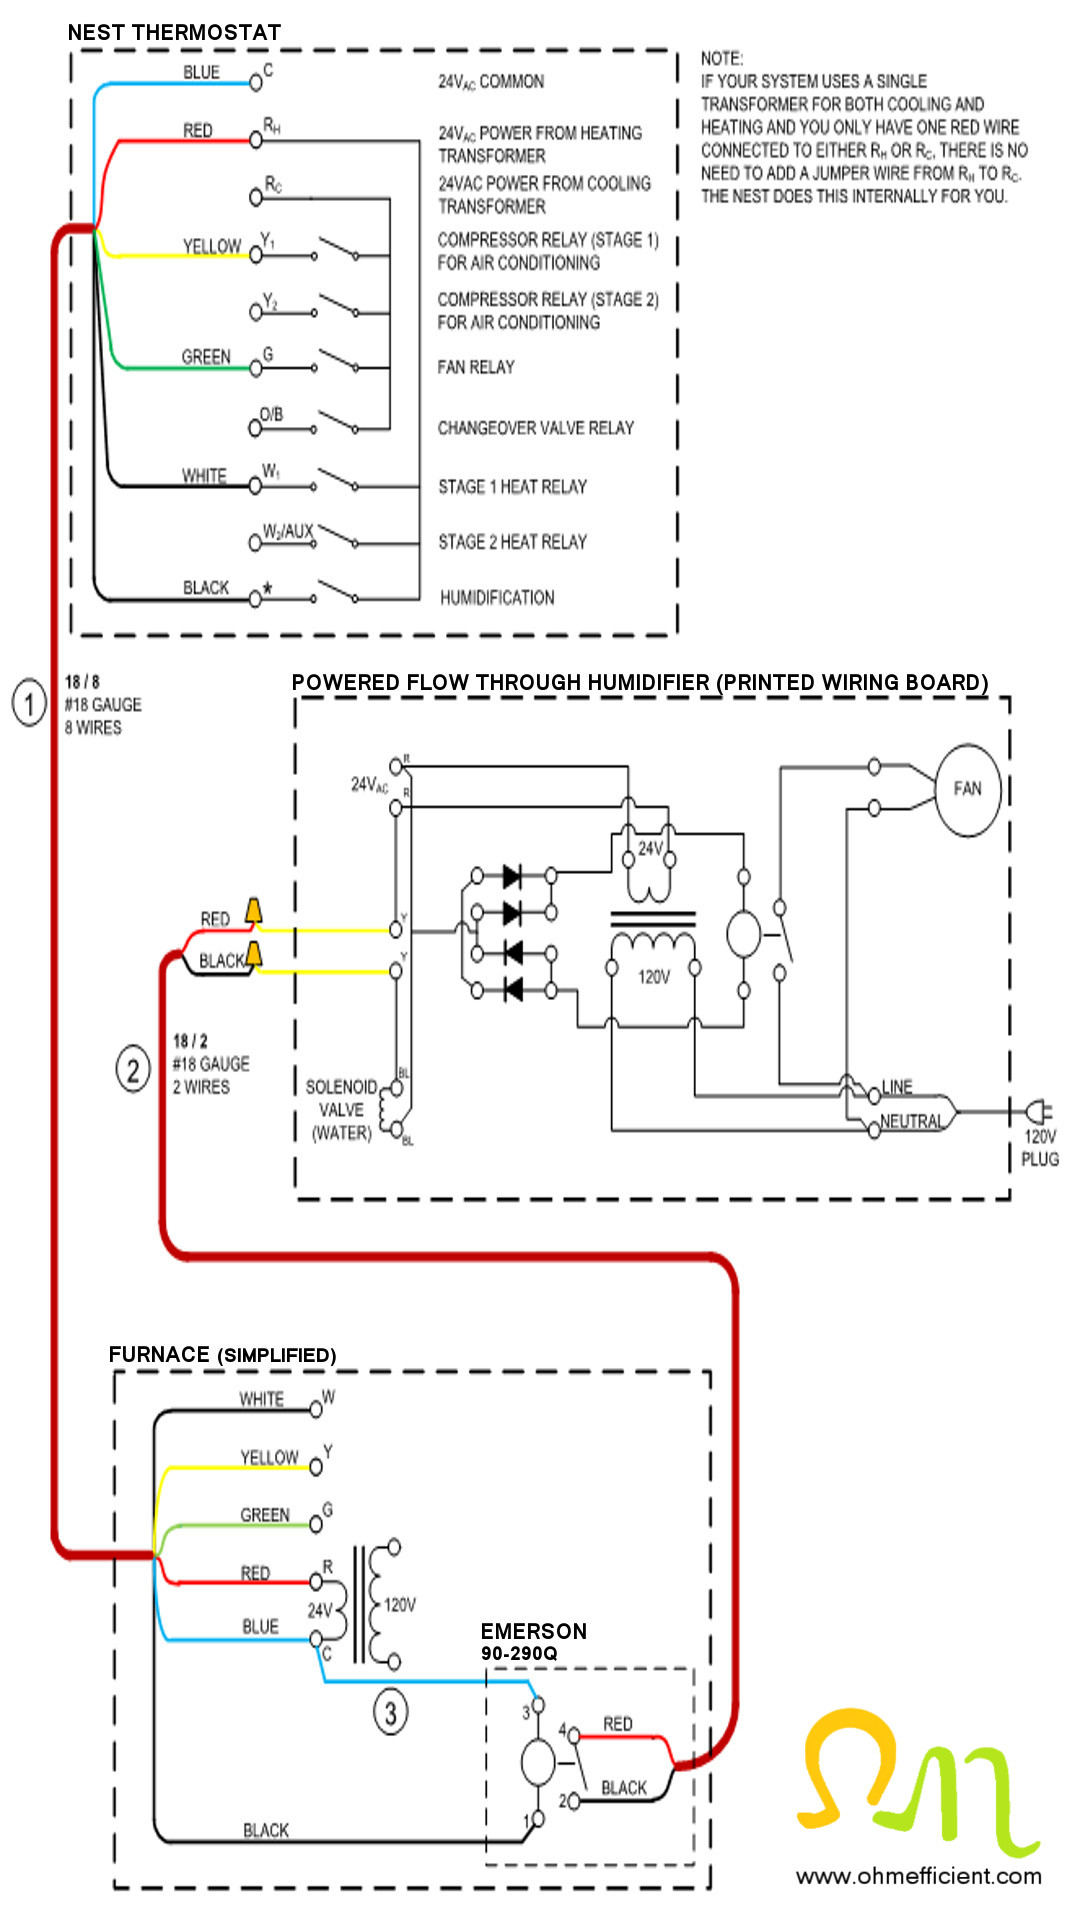 How To Connect & Setup A Nest Thermostat To Function As A Humidistat - What Is The Wiring Diagram For A Forced Air Furnace Using The Nest Thrmostat